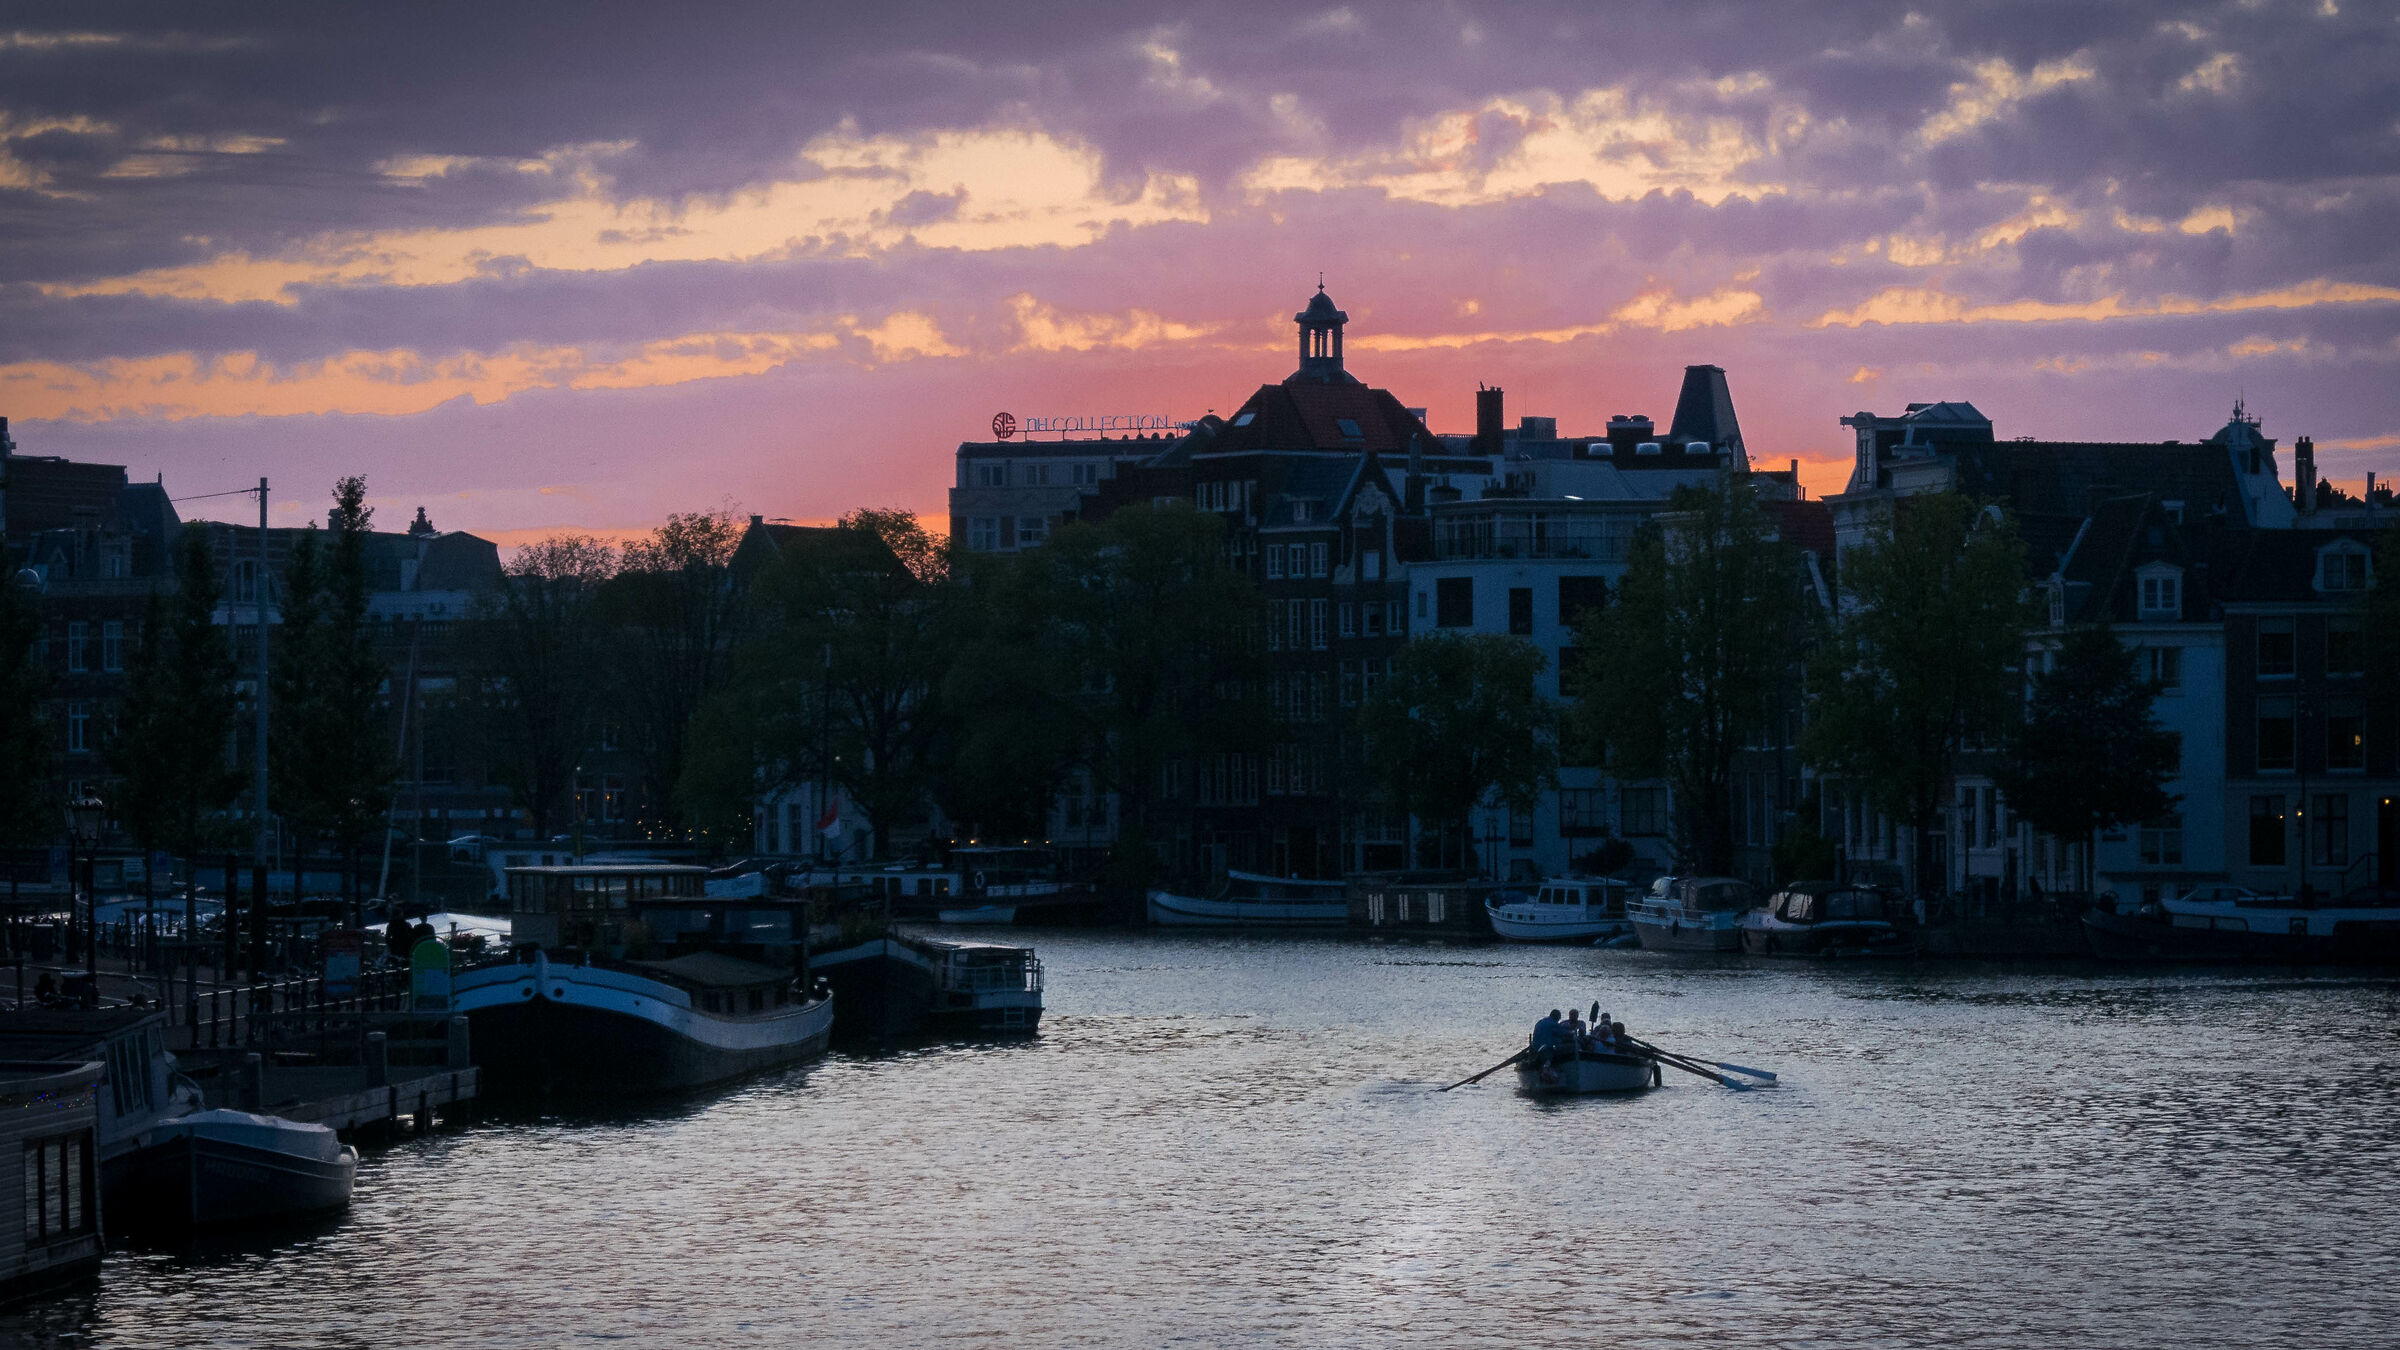 Sunset in Amsterdam...